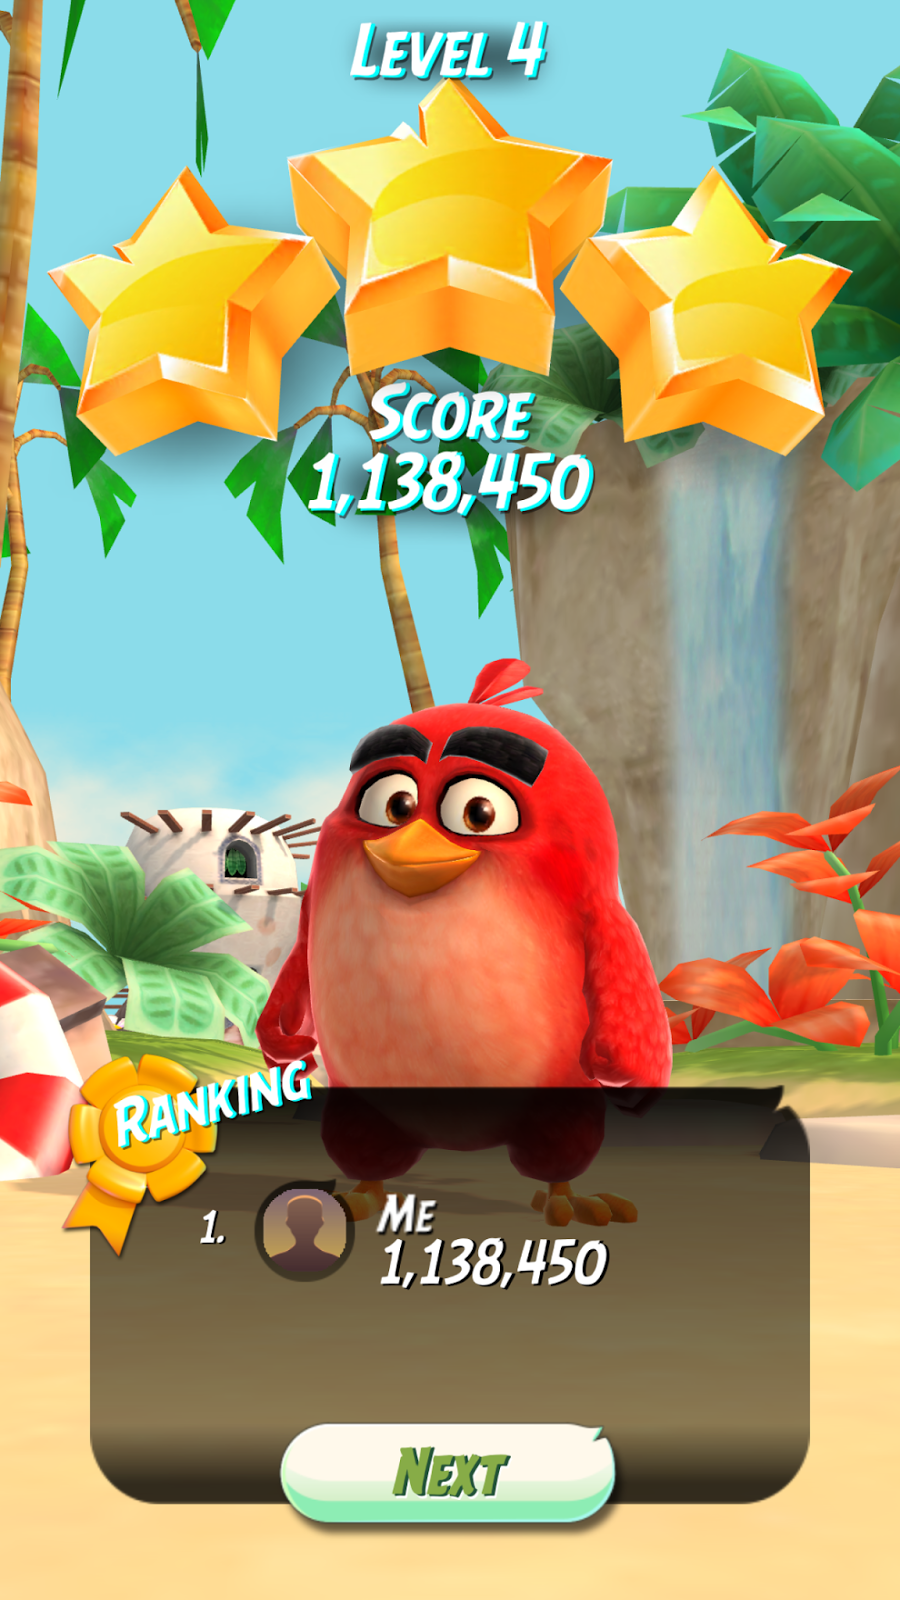 Free iphone ipad ios apps and games daily free iphone game angry birds action is a good refreshed game from rovio people myself included are getting bored with its original 2d view but luckily they made this solutioingenieria Gallery